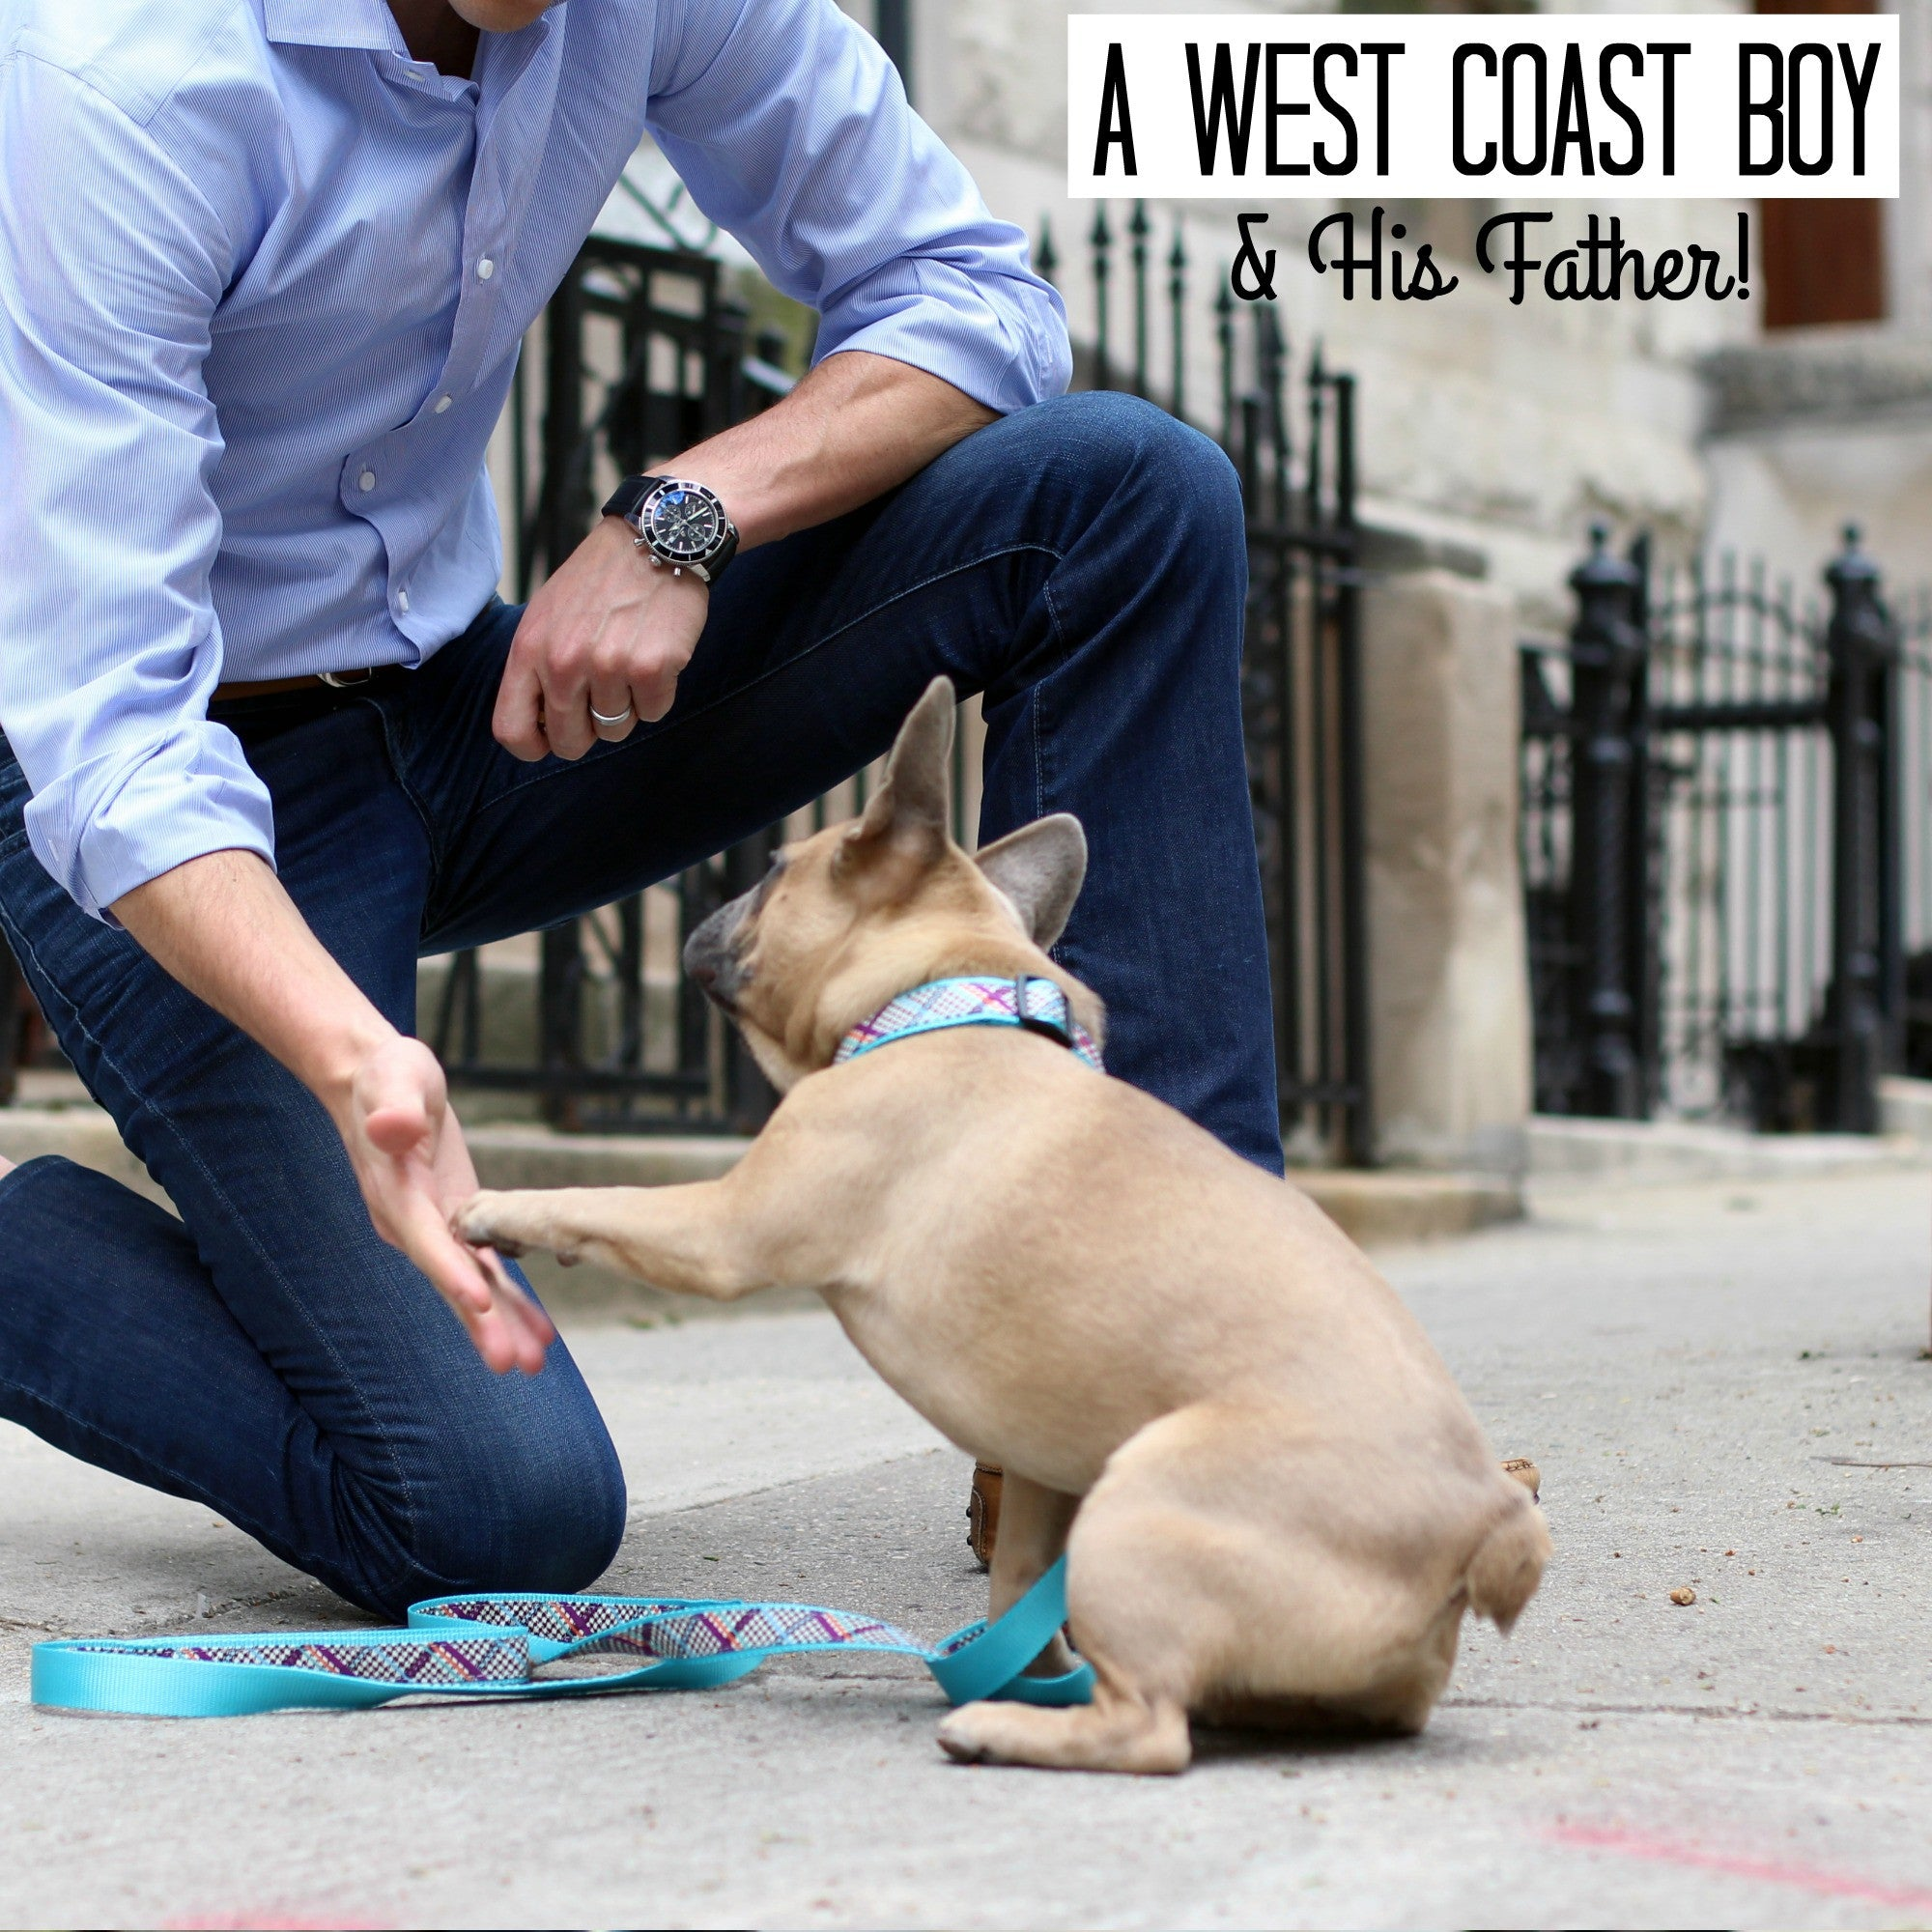 A West Coast Boy and His Father  - Gilbert and Benny!